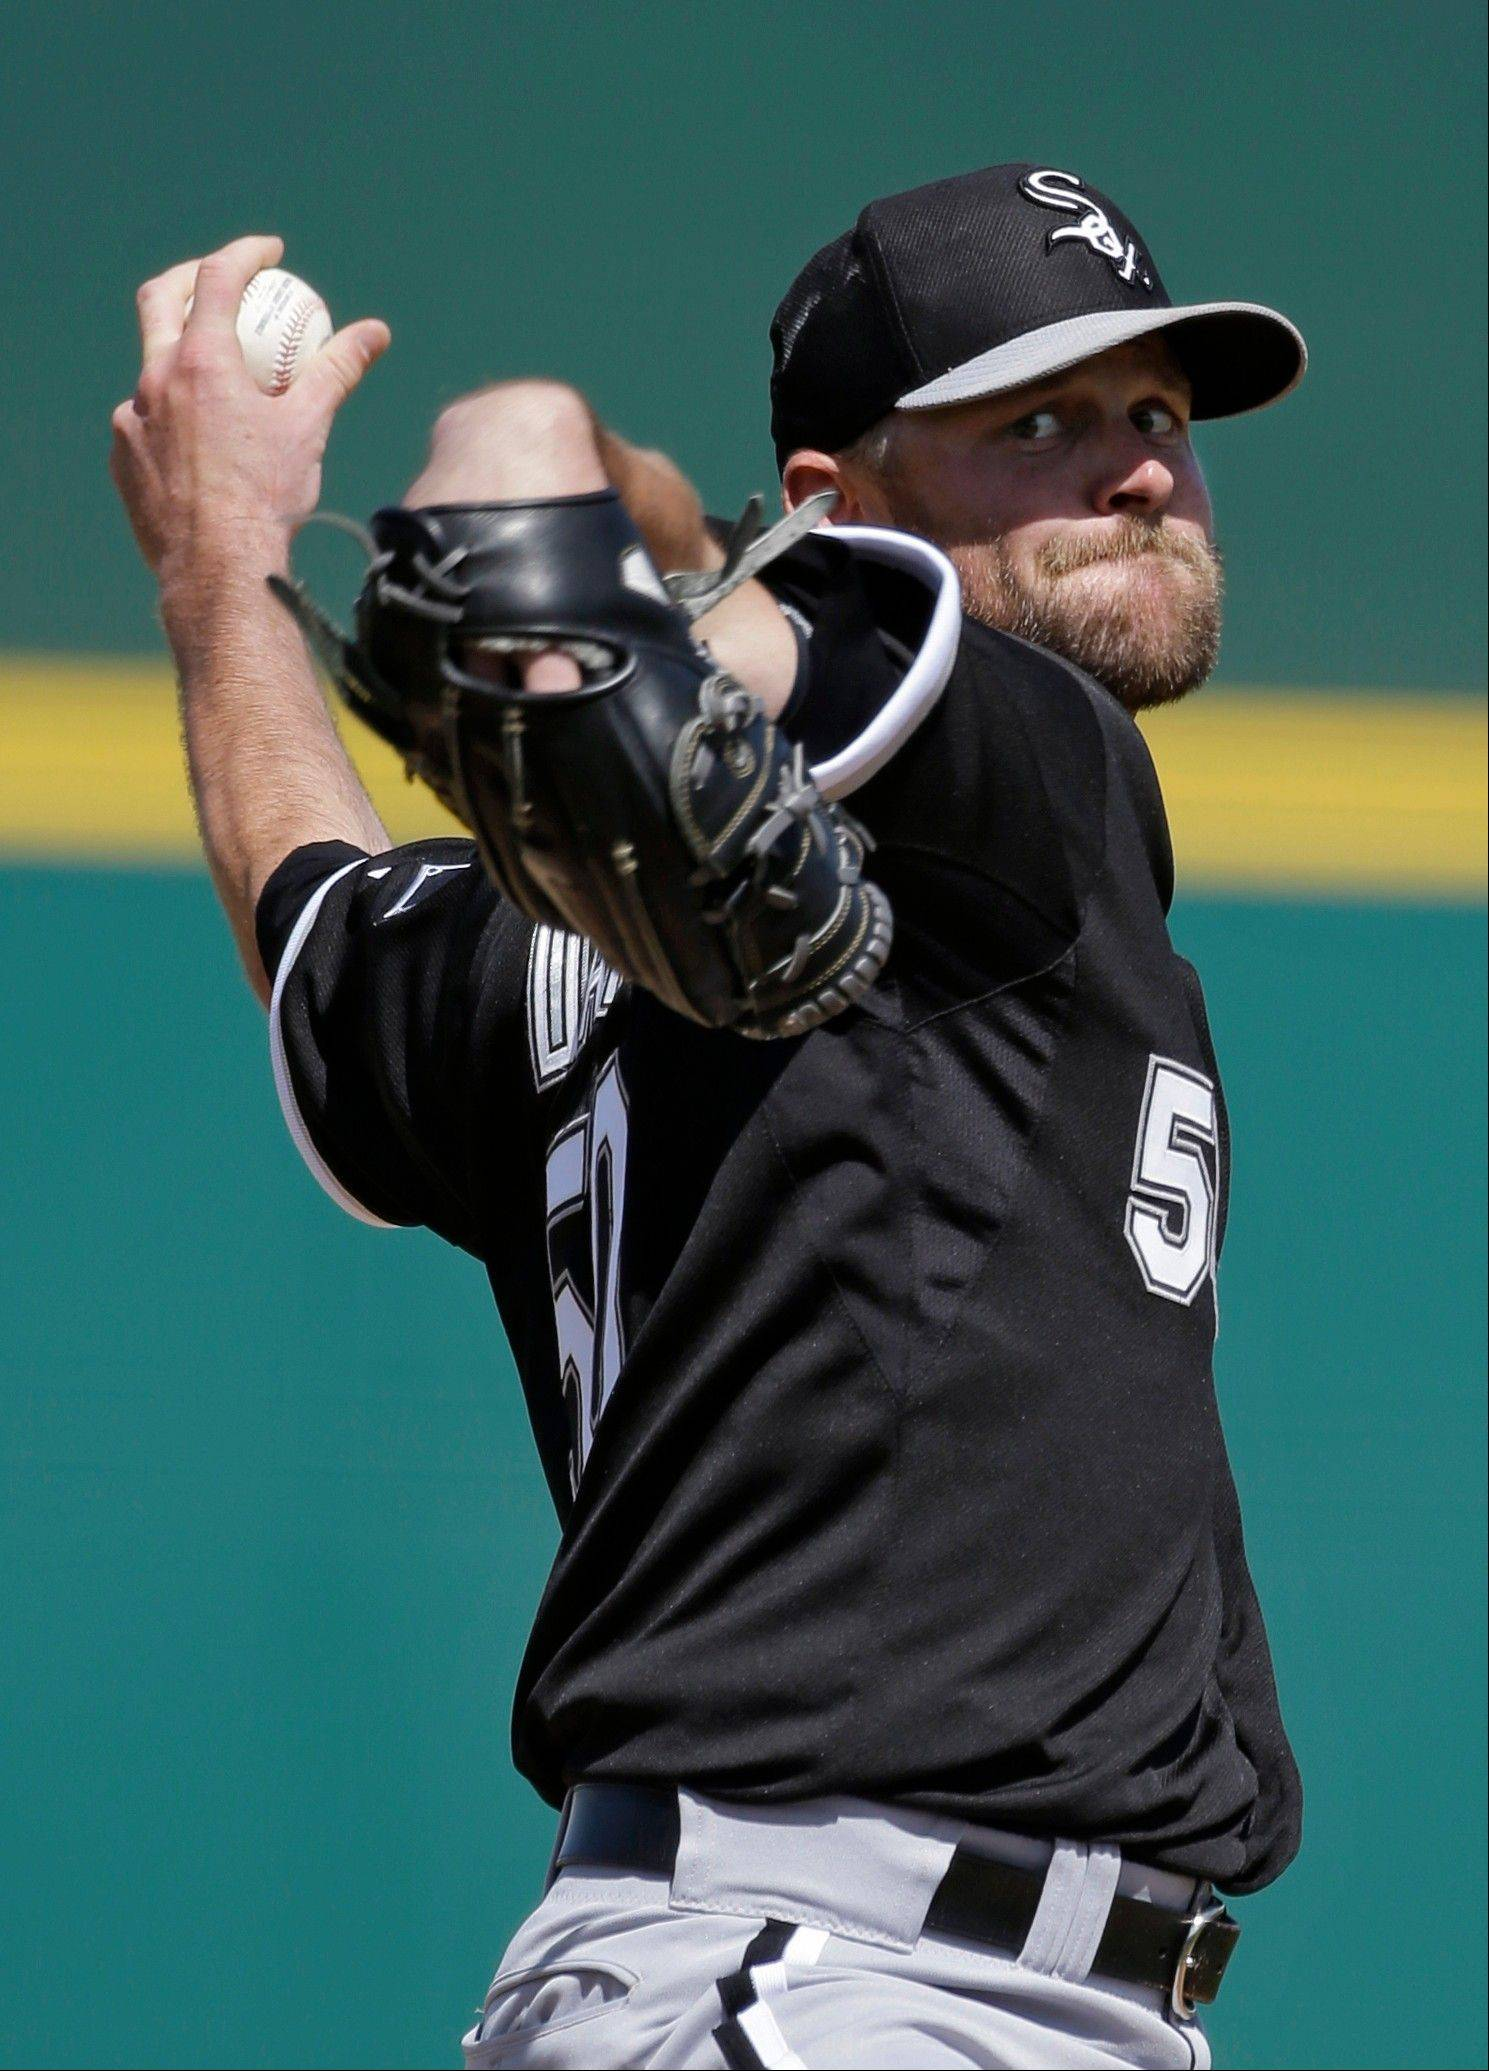 White Sox starting pitcher John Danks delivers against the Cincinnati Reds in the first inning Tuesday at Goodyear, Ariz.